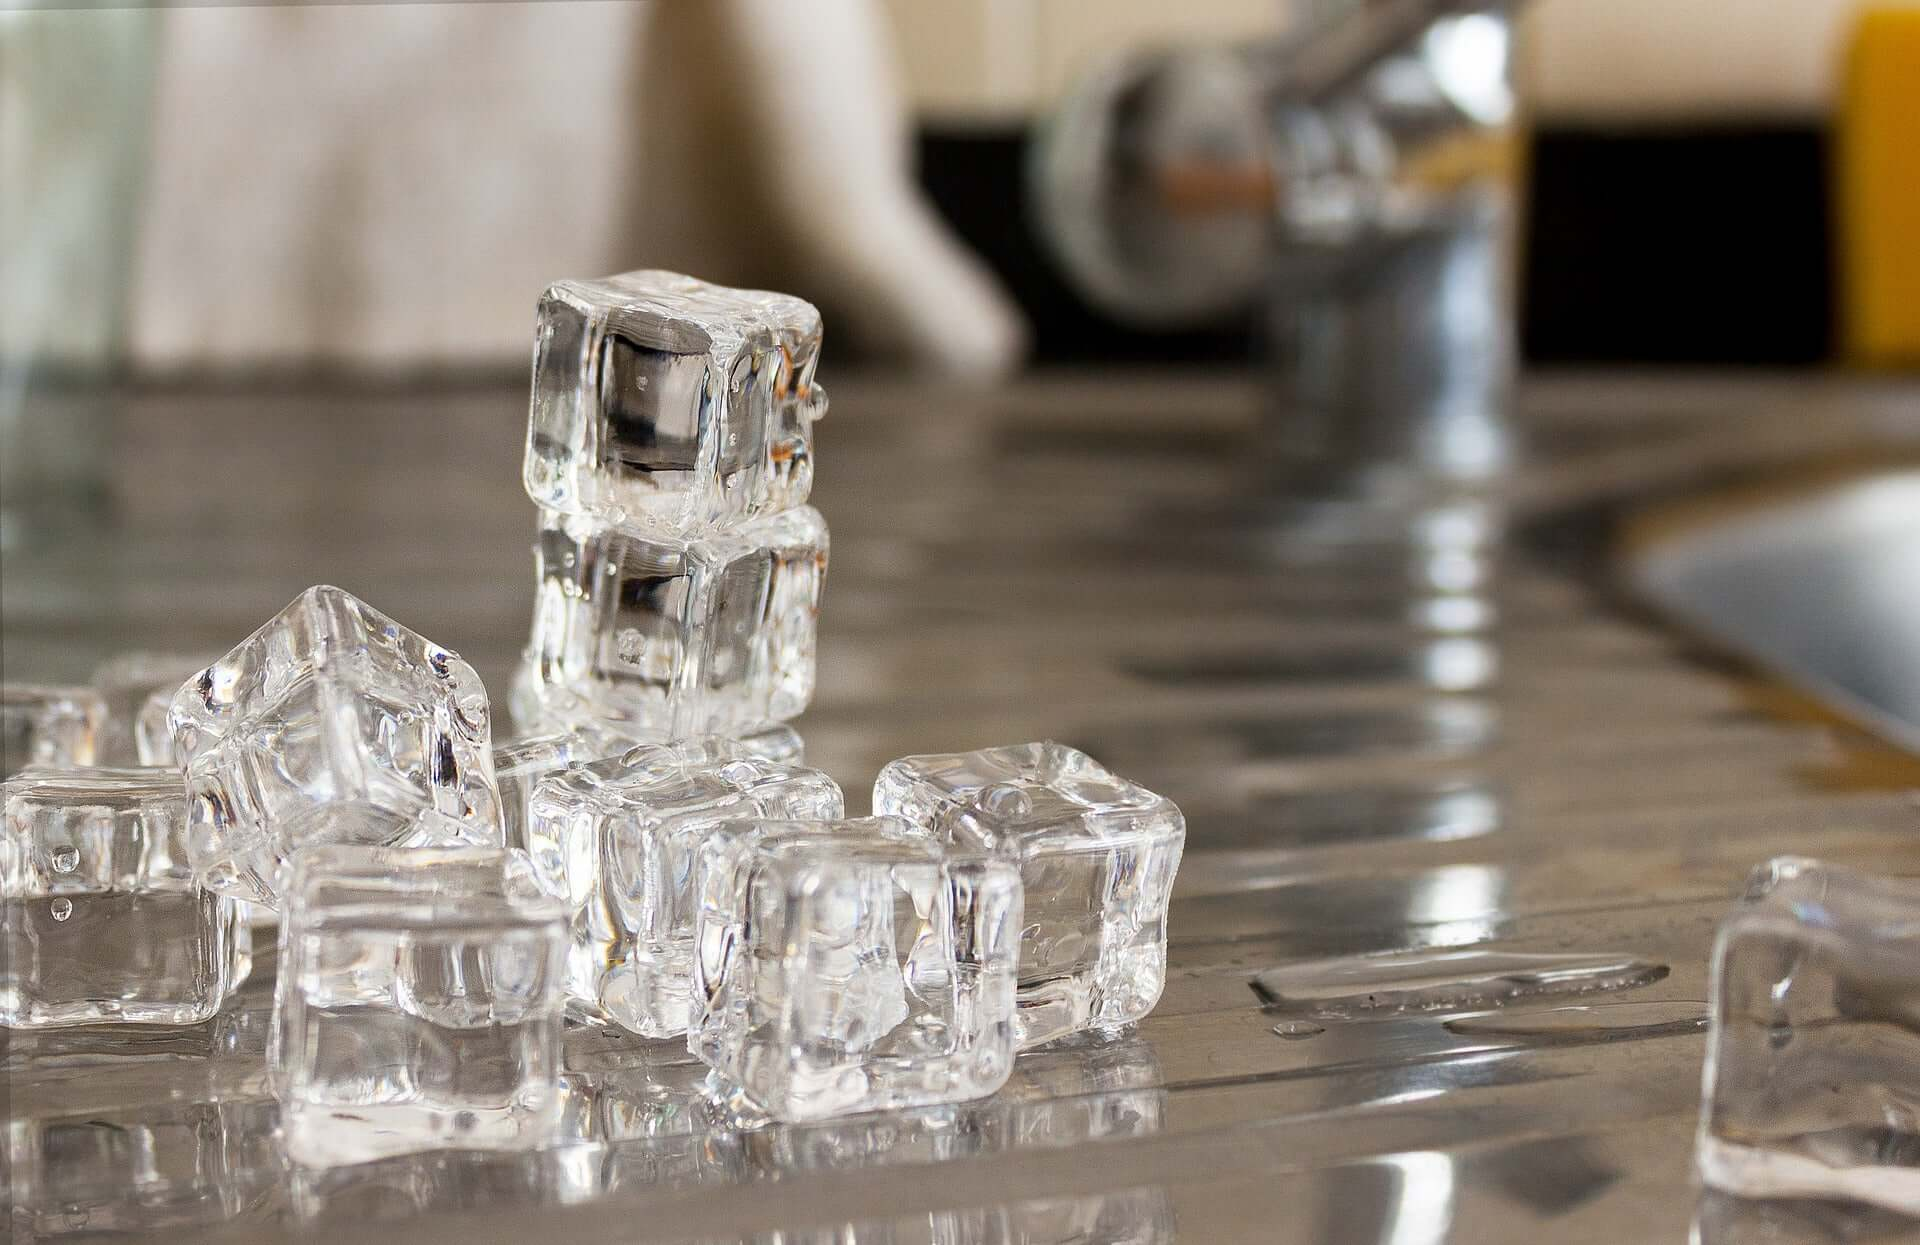 Ice cubes on a kitchen counter.